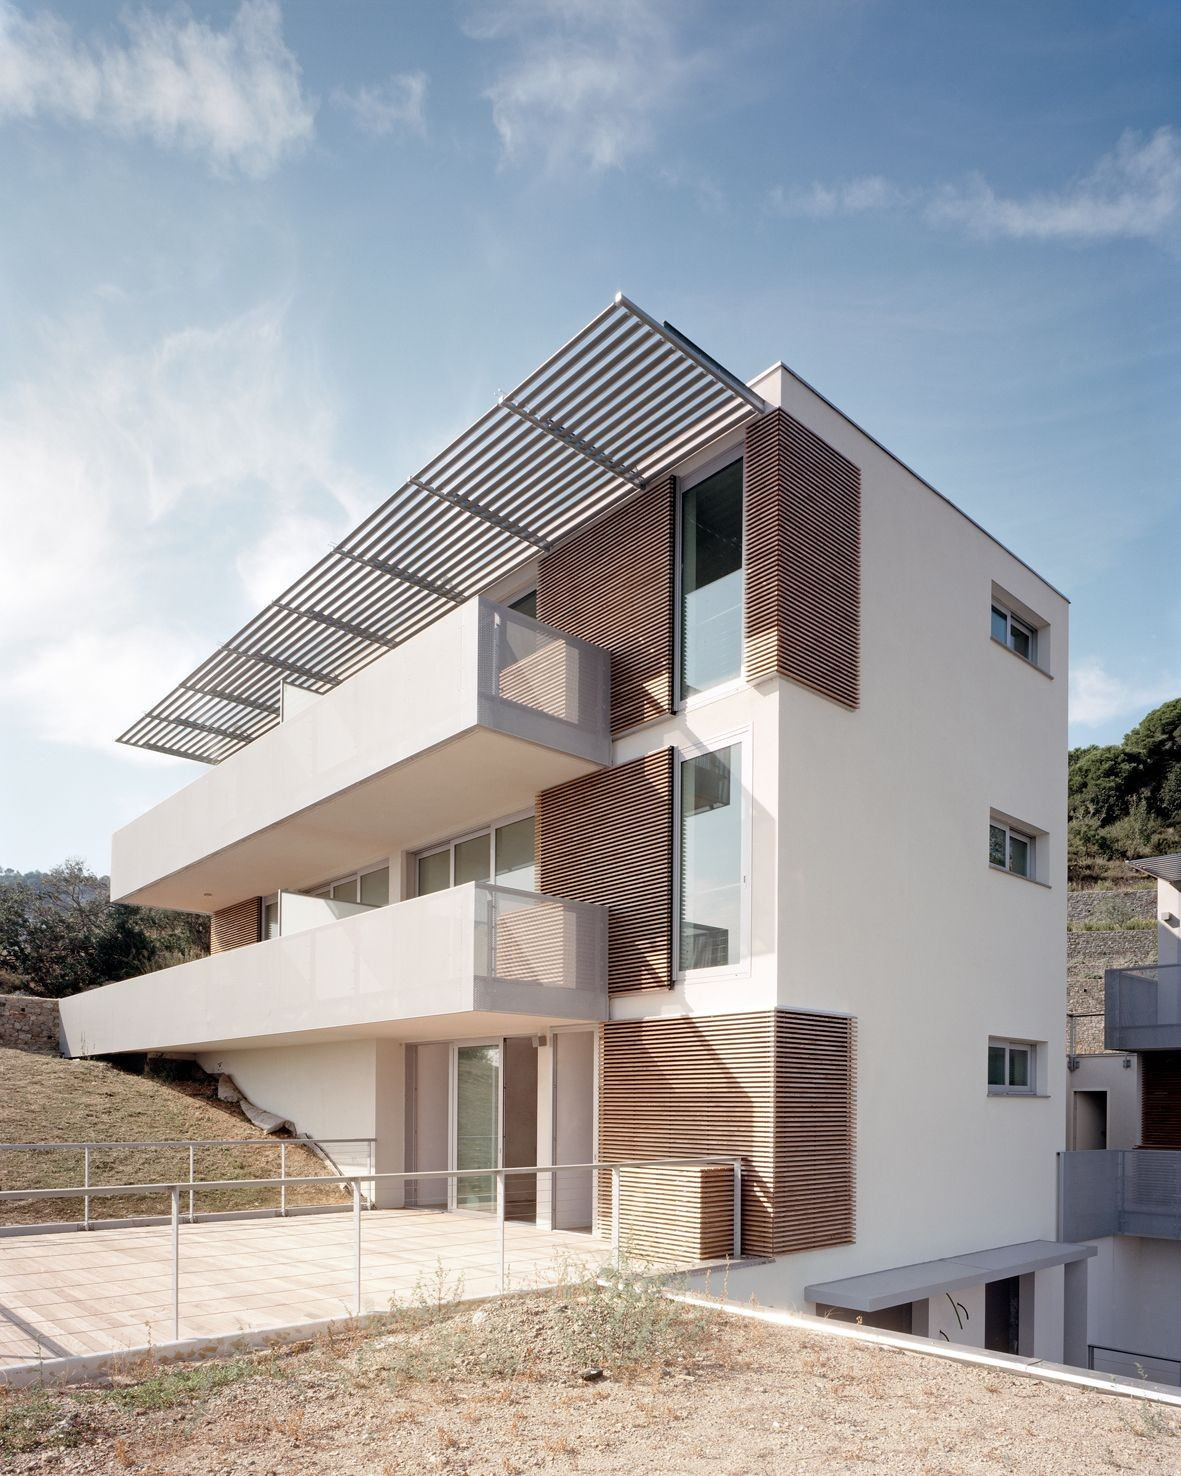 Courtesy of Ariu + Vallino Architects